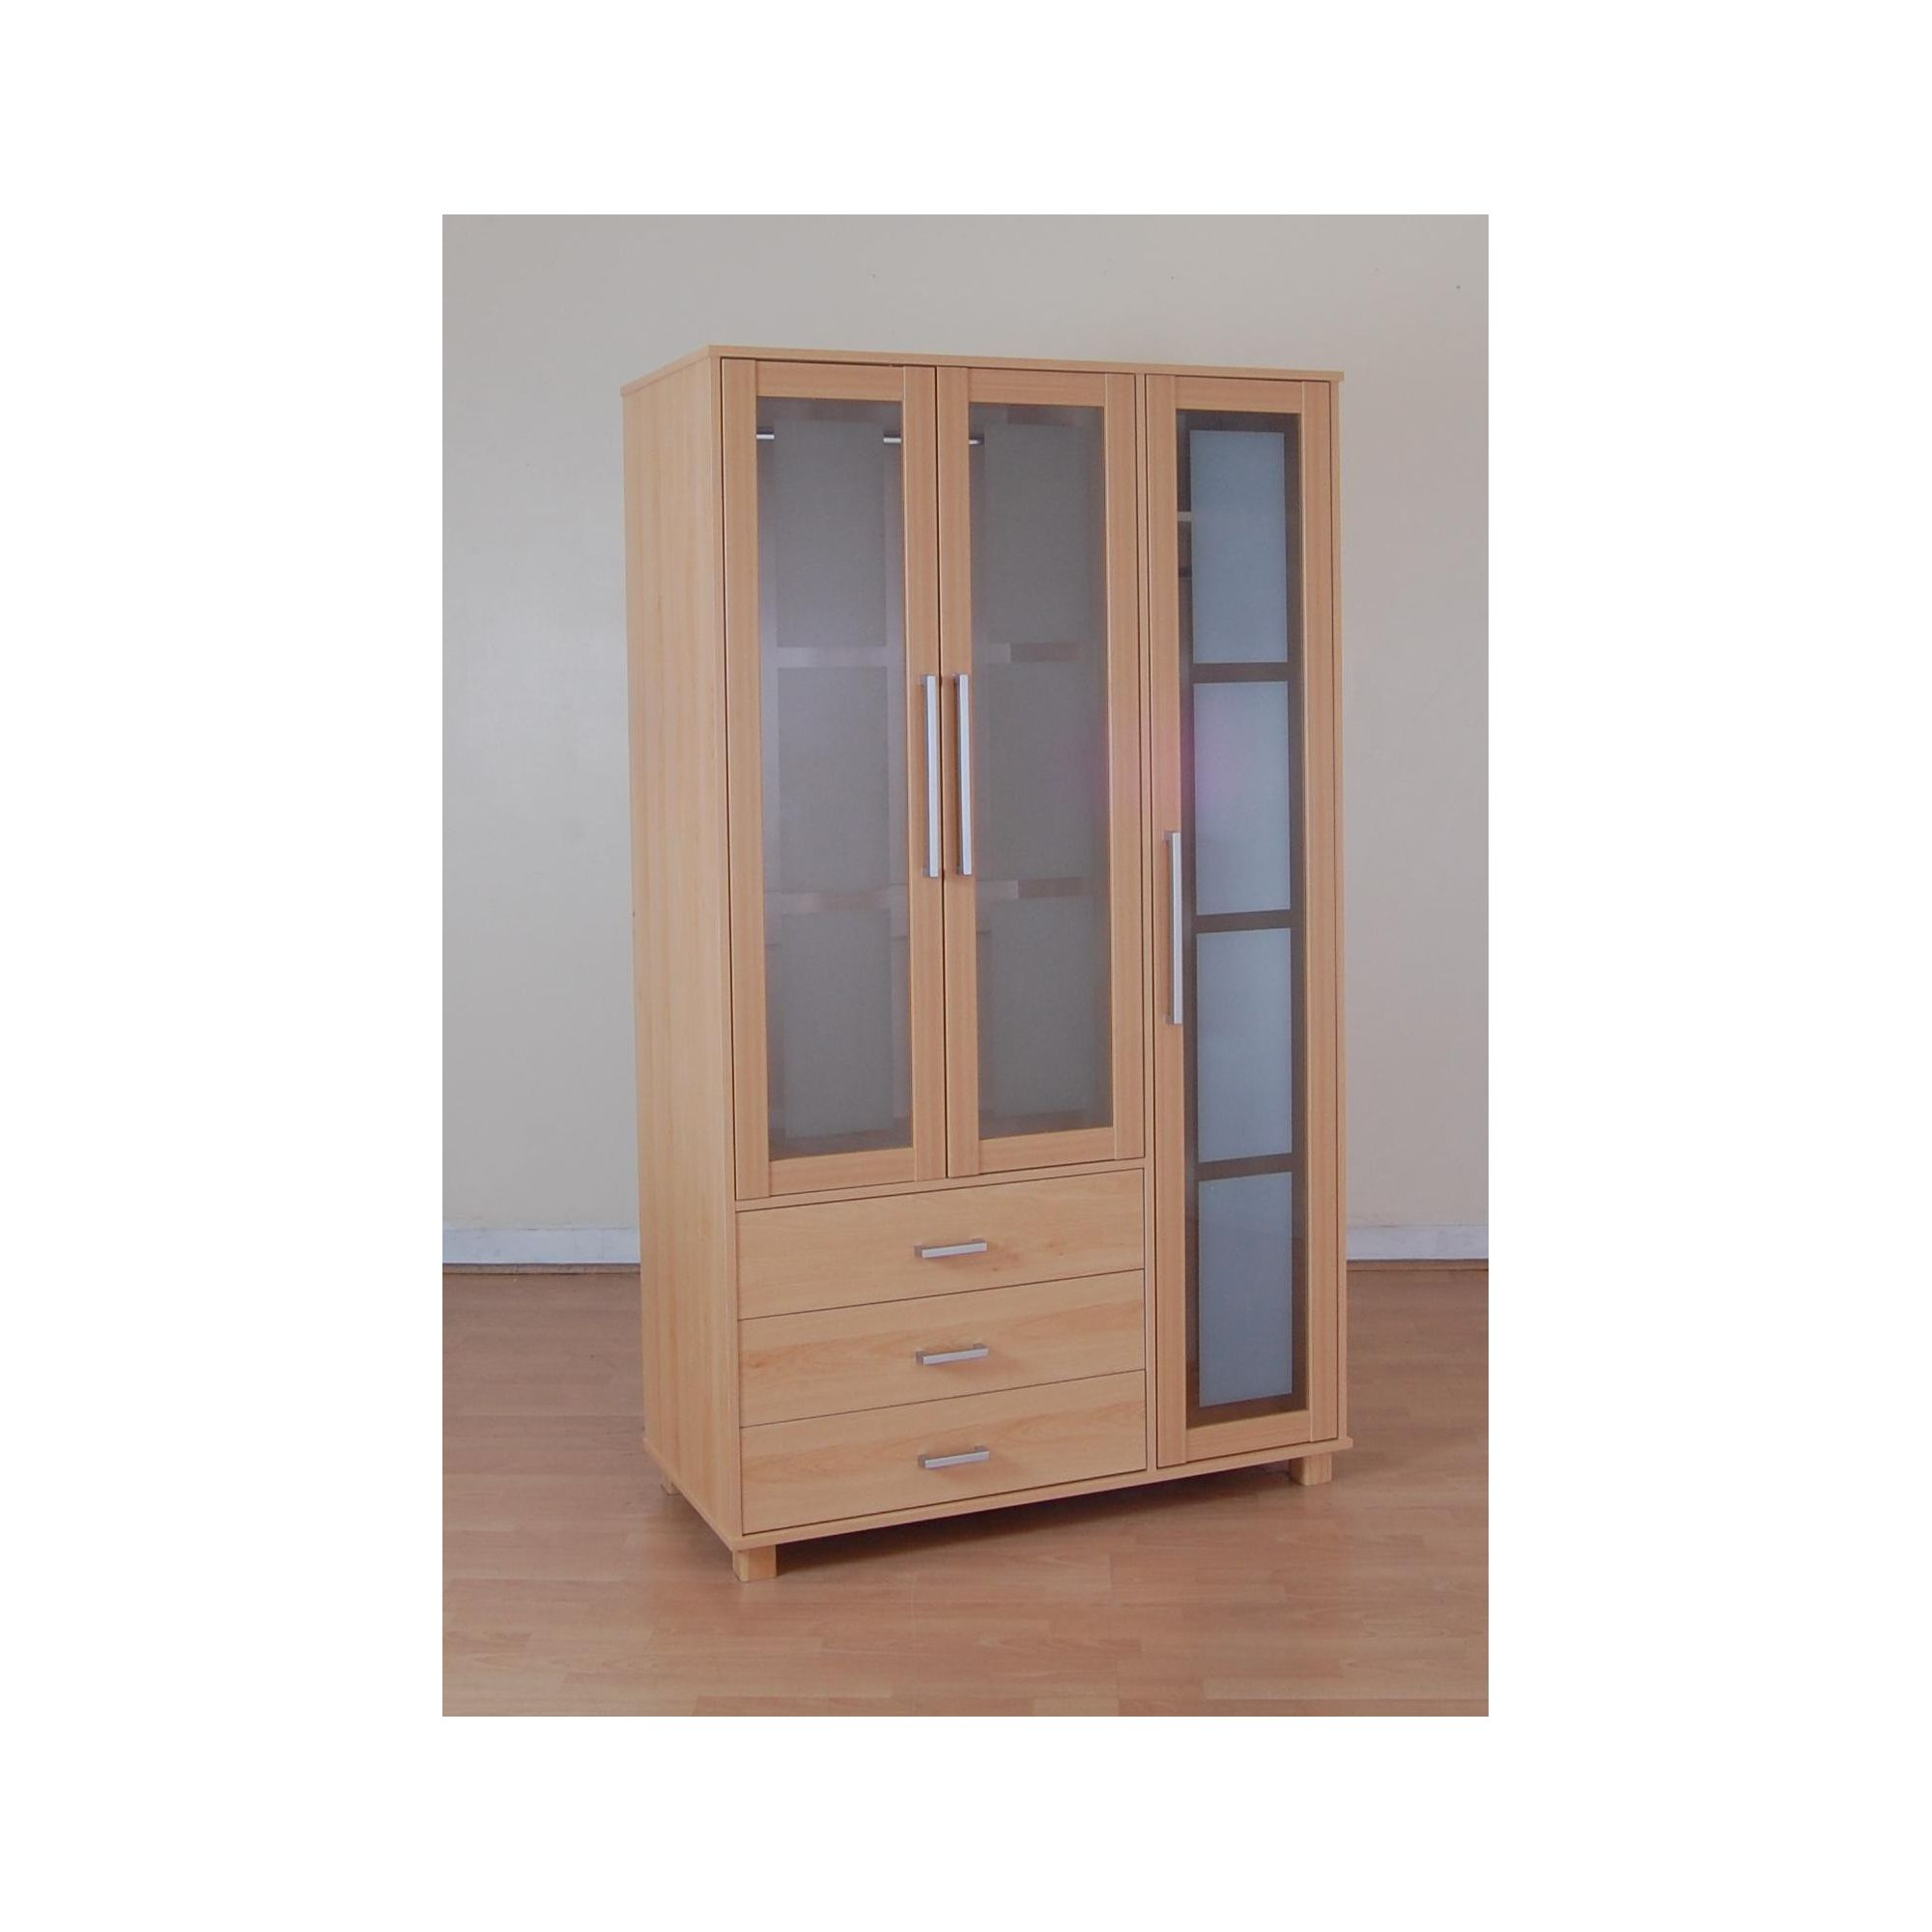 Kit Form Kit-form Glass Three Door and Three Drawer Wardrobe in Beech at Tesco Direct